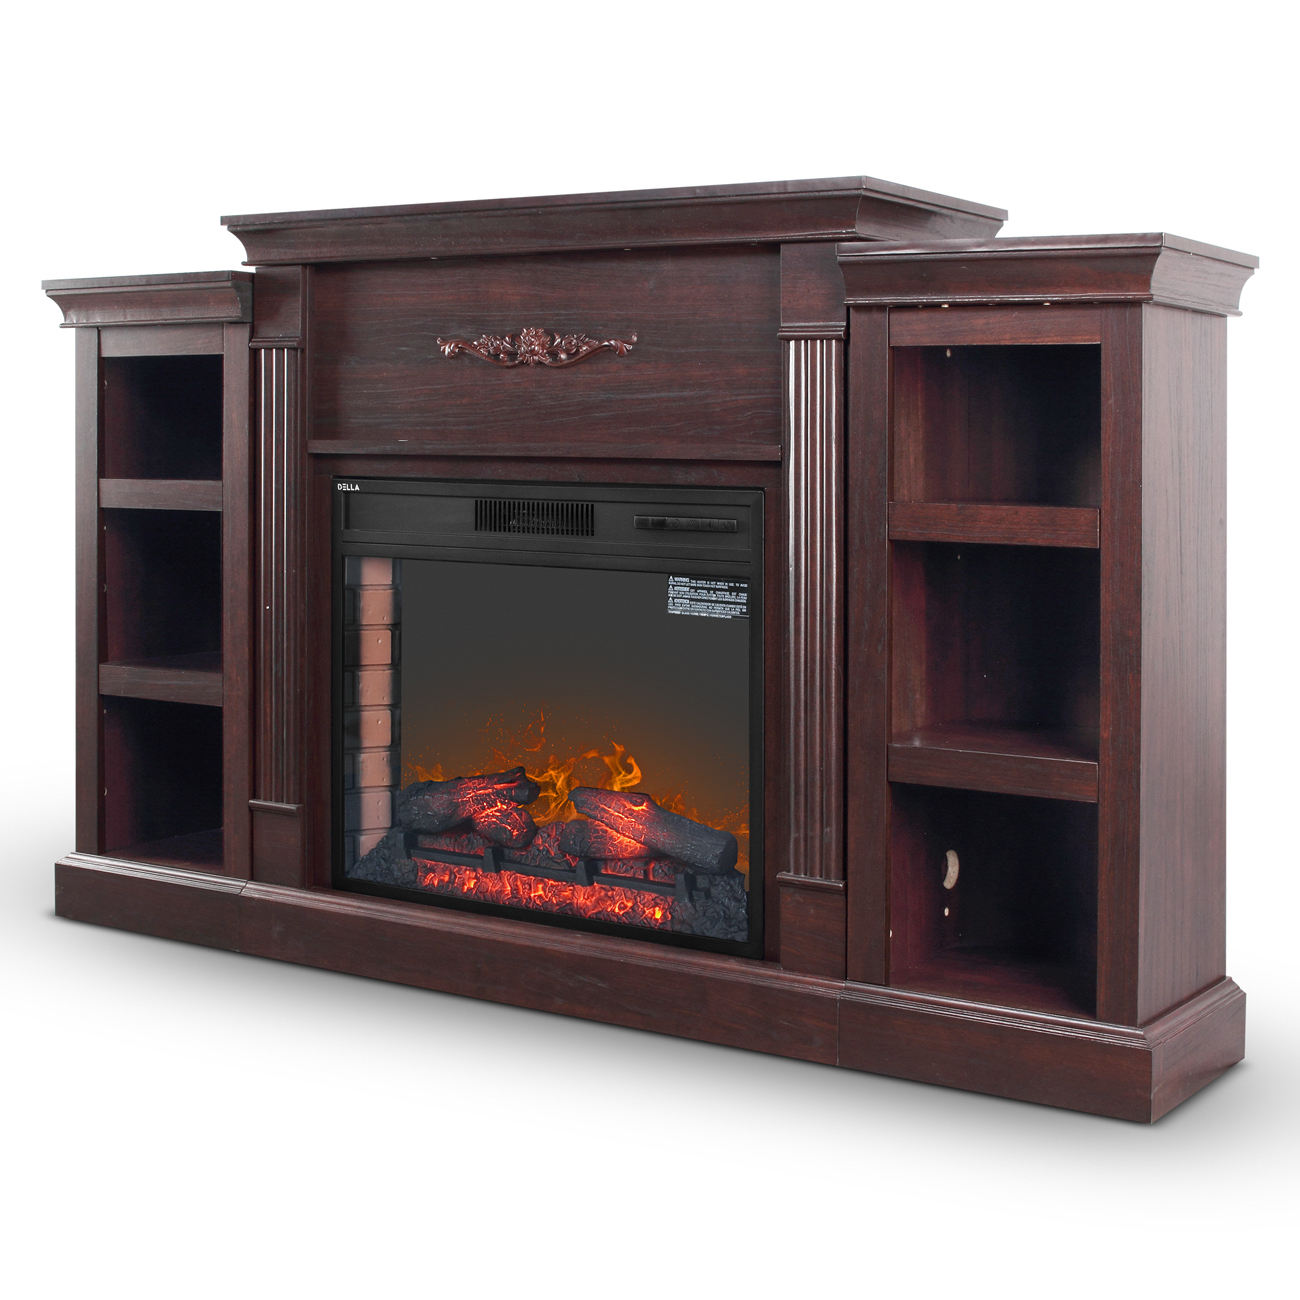 28-Inch Infrared Quartz Space Heater Electric Wood Fireplace